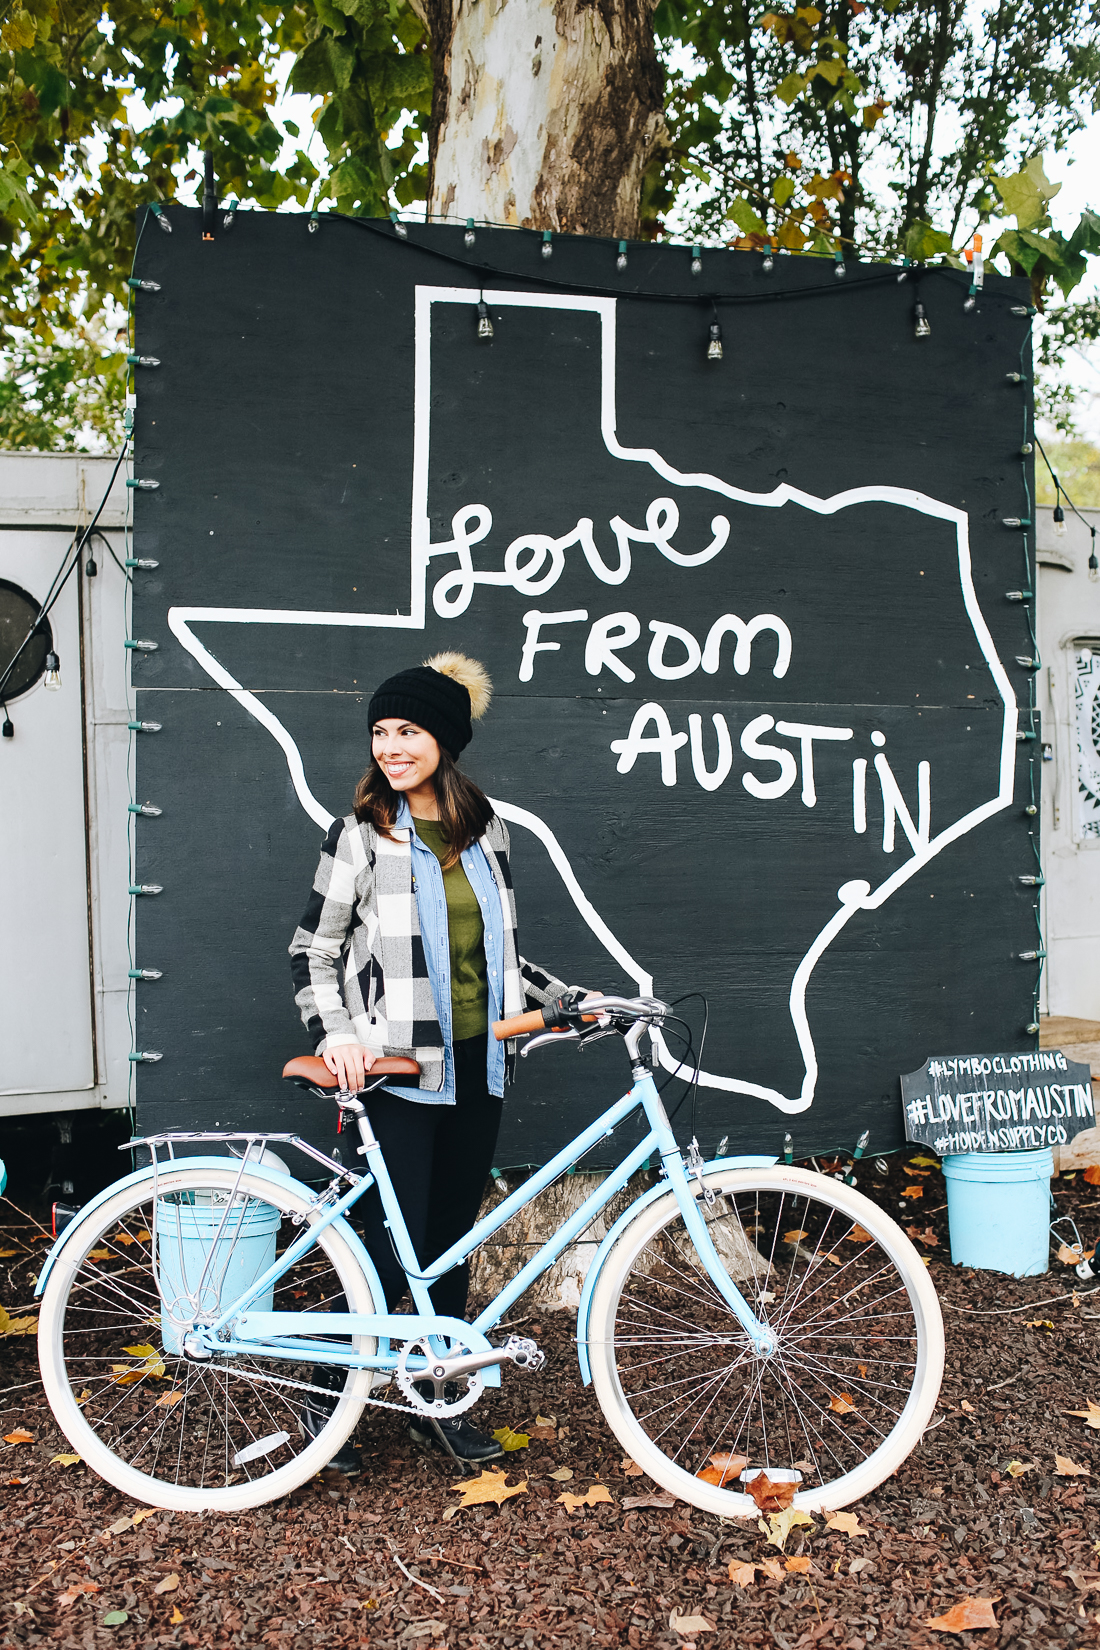 austin texas, austin fashion blog, austin fashion blogger, austin fashion, austin fashion blog, atx style, keep austin stylish, austin texas bloggers, austin style, austin style blog, austin style blogger, austin style bloggers, style bloggers, austin fashion bloggers, atx, austin life, austin city guide, guide to austin, austin guide, austin texas guide, what to do in austin texas